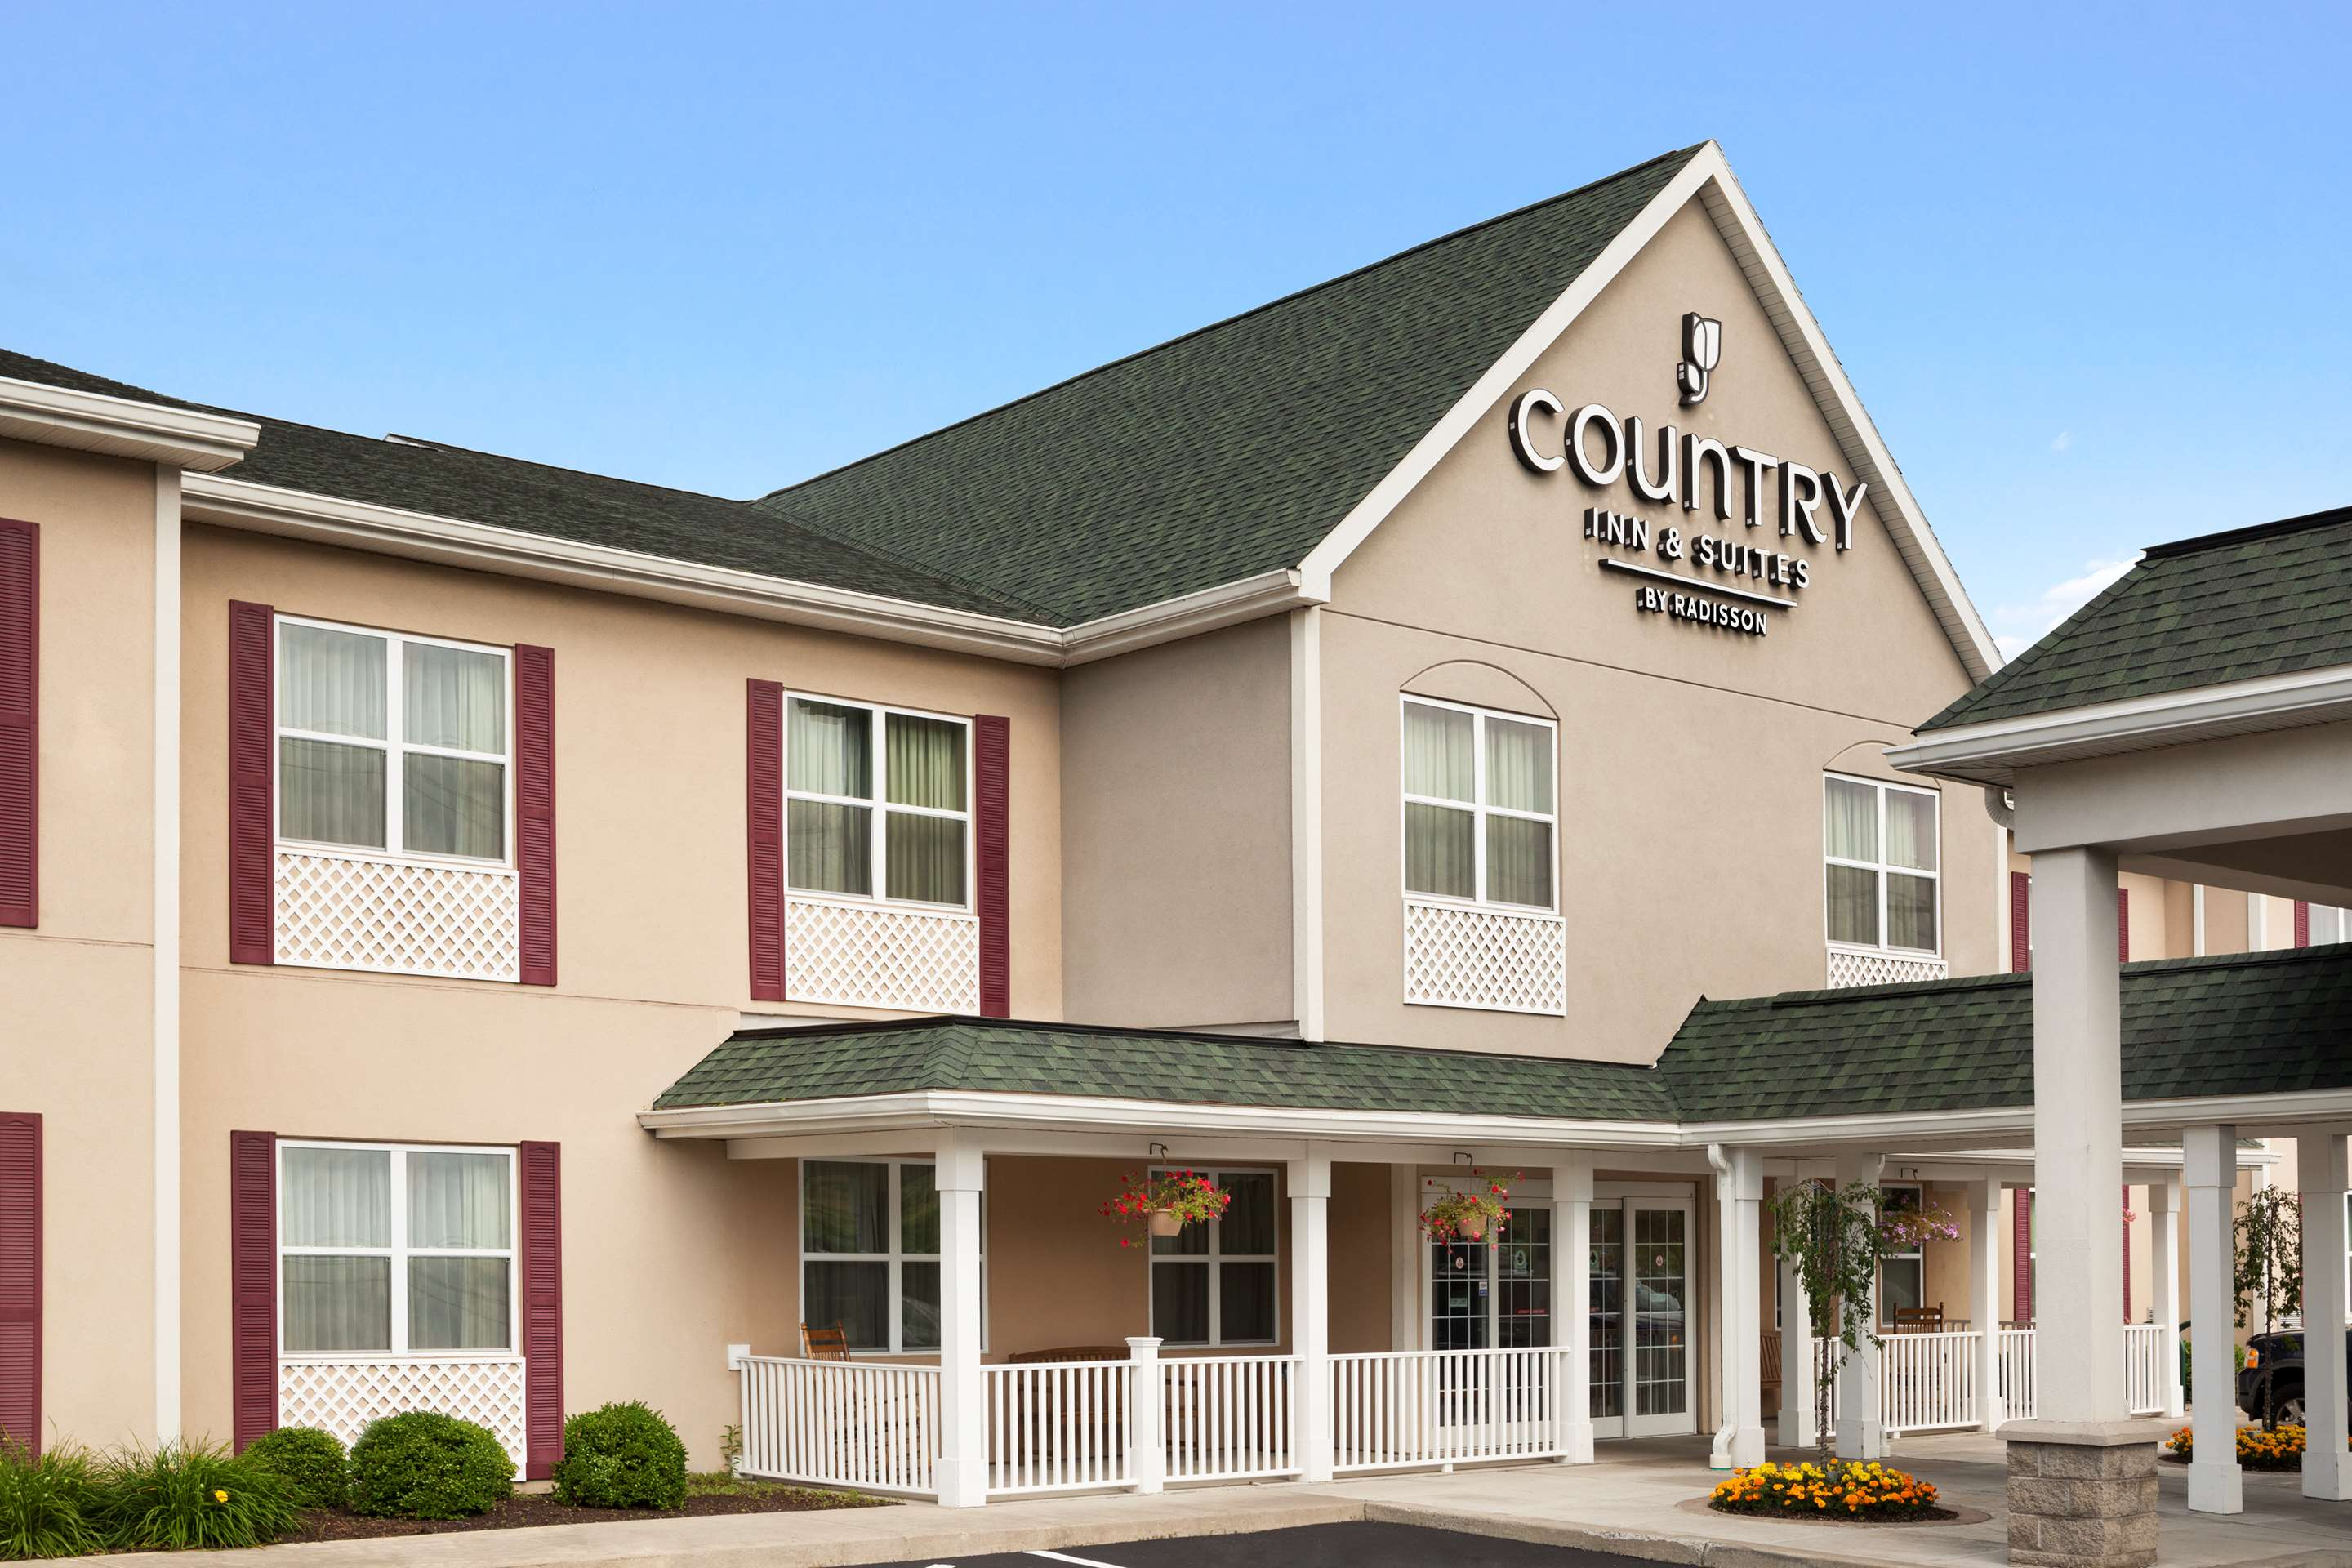 Hotels In Ithaca Ny Country Inn Suites Ithaca Ny